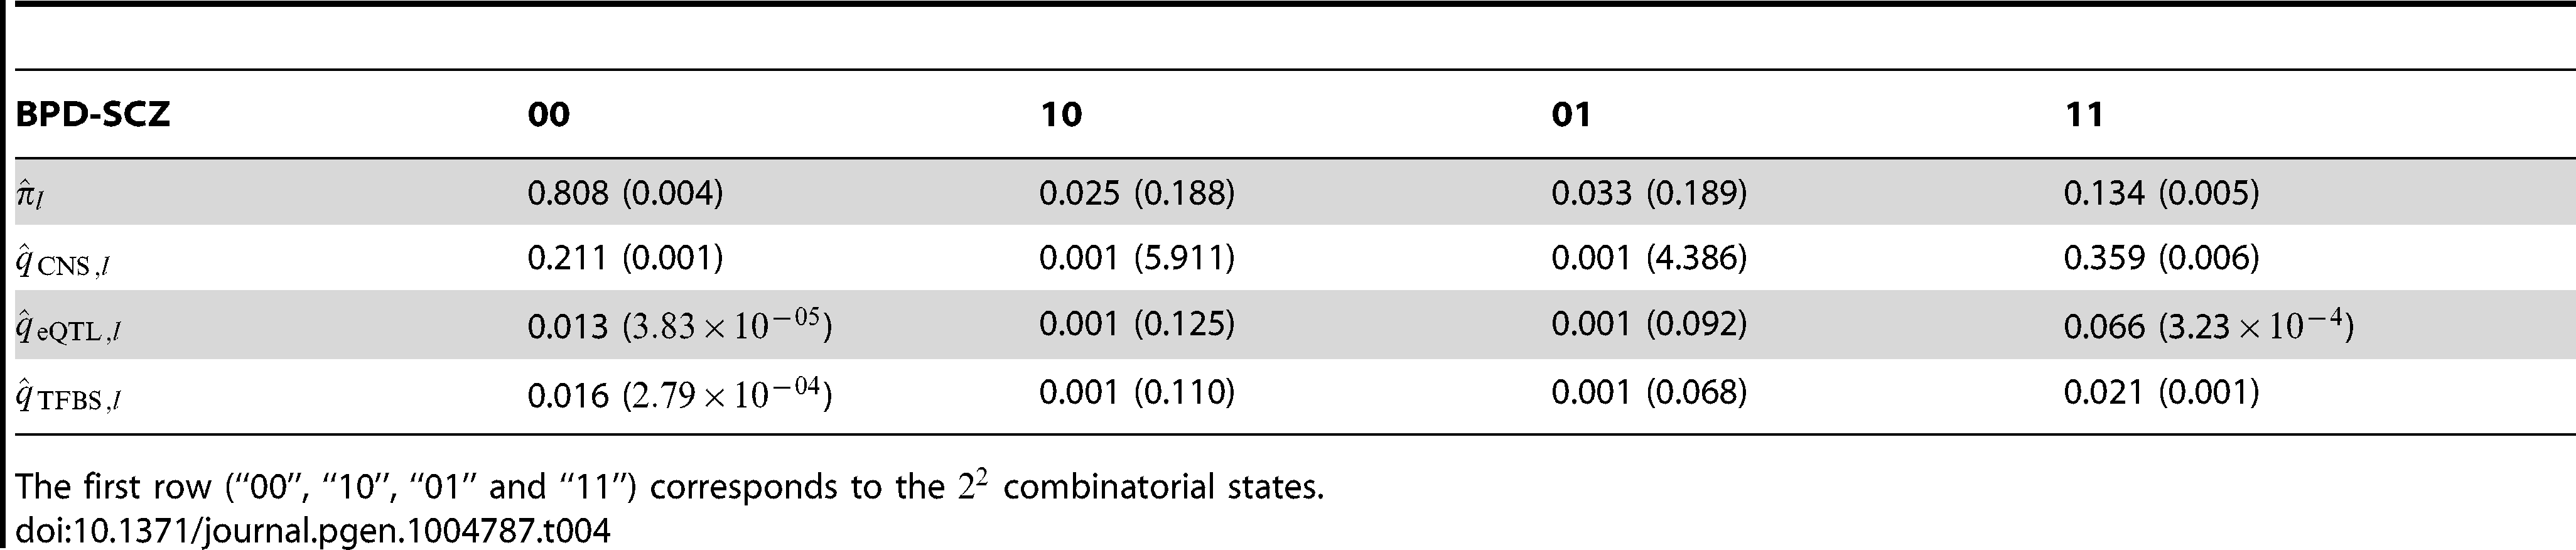 The estimated parameters and their standard errors for the joint analysis of BPD and SCZ, together with multiple annotation data: The CNS gene set, eQTL and TFBS.